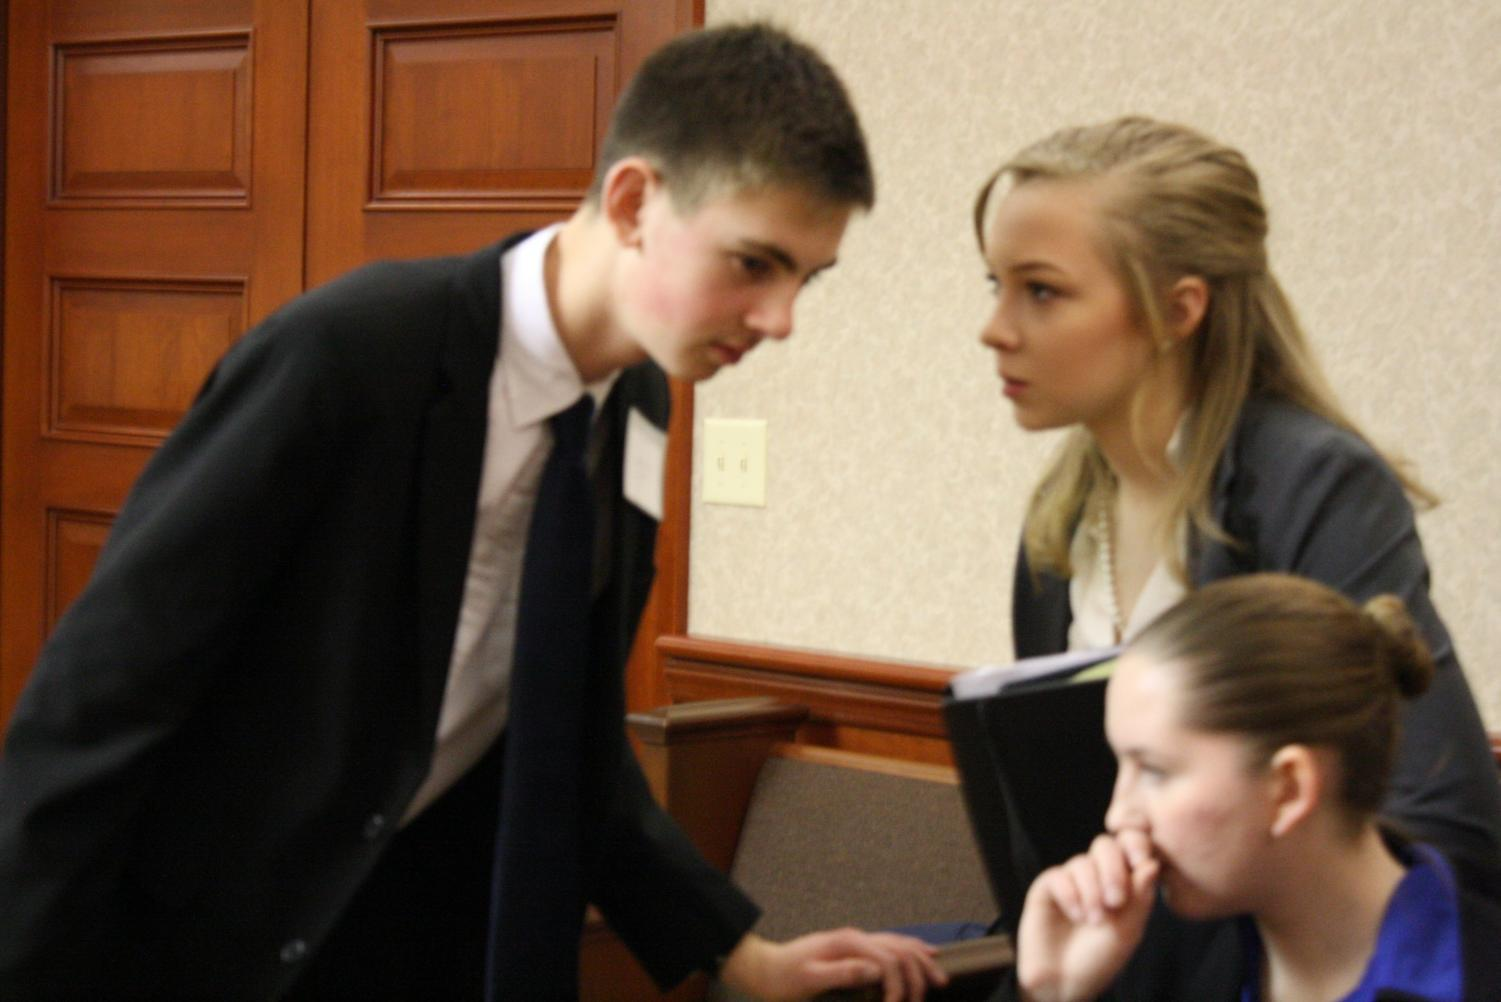 Defense Attorney Lainy Demeropolis advises Prosecution Attorney Levi Grimm before the District competition at Butler County Courthouse.